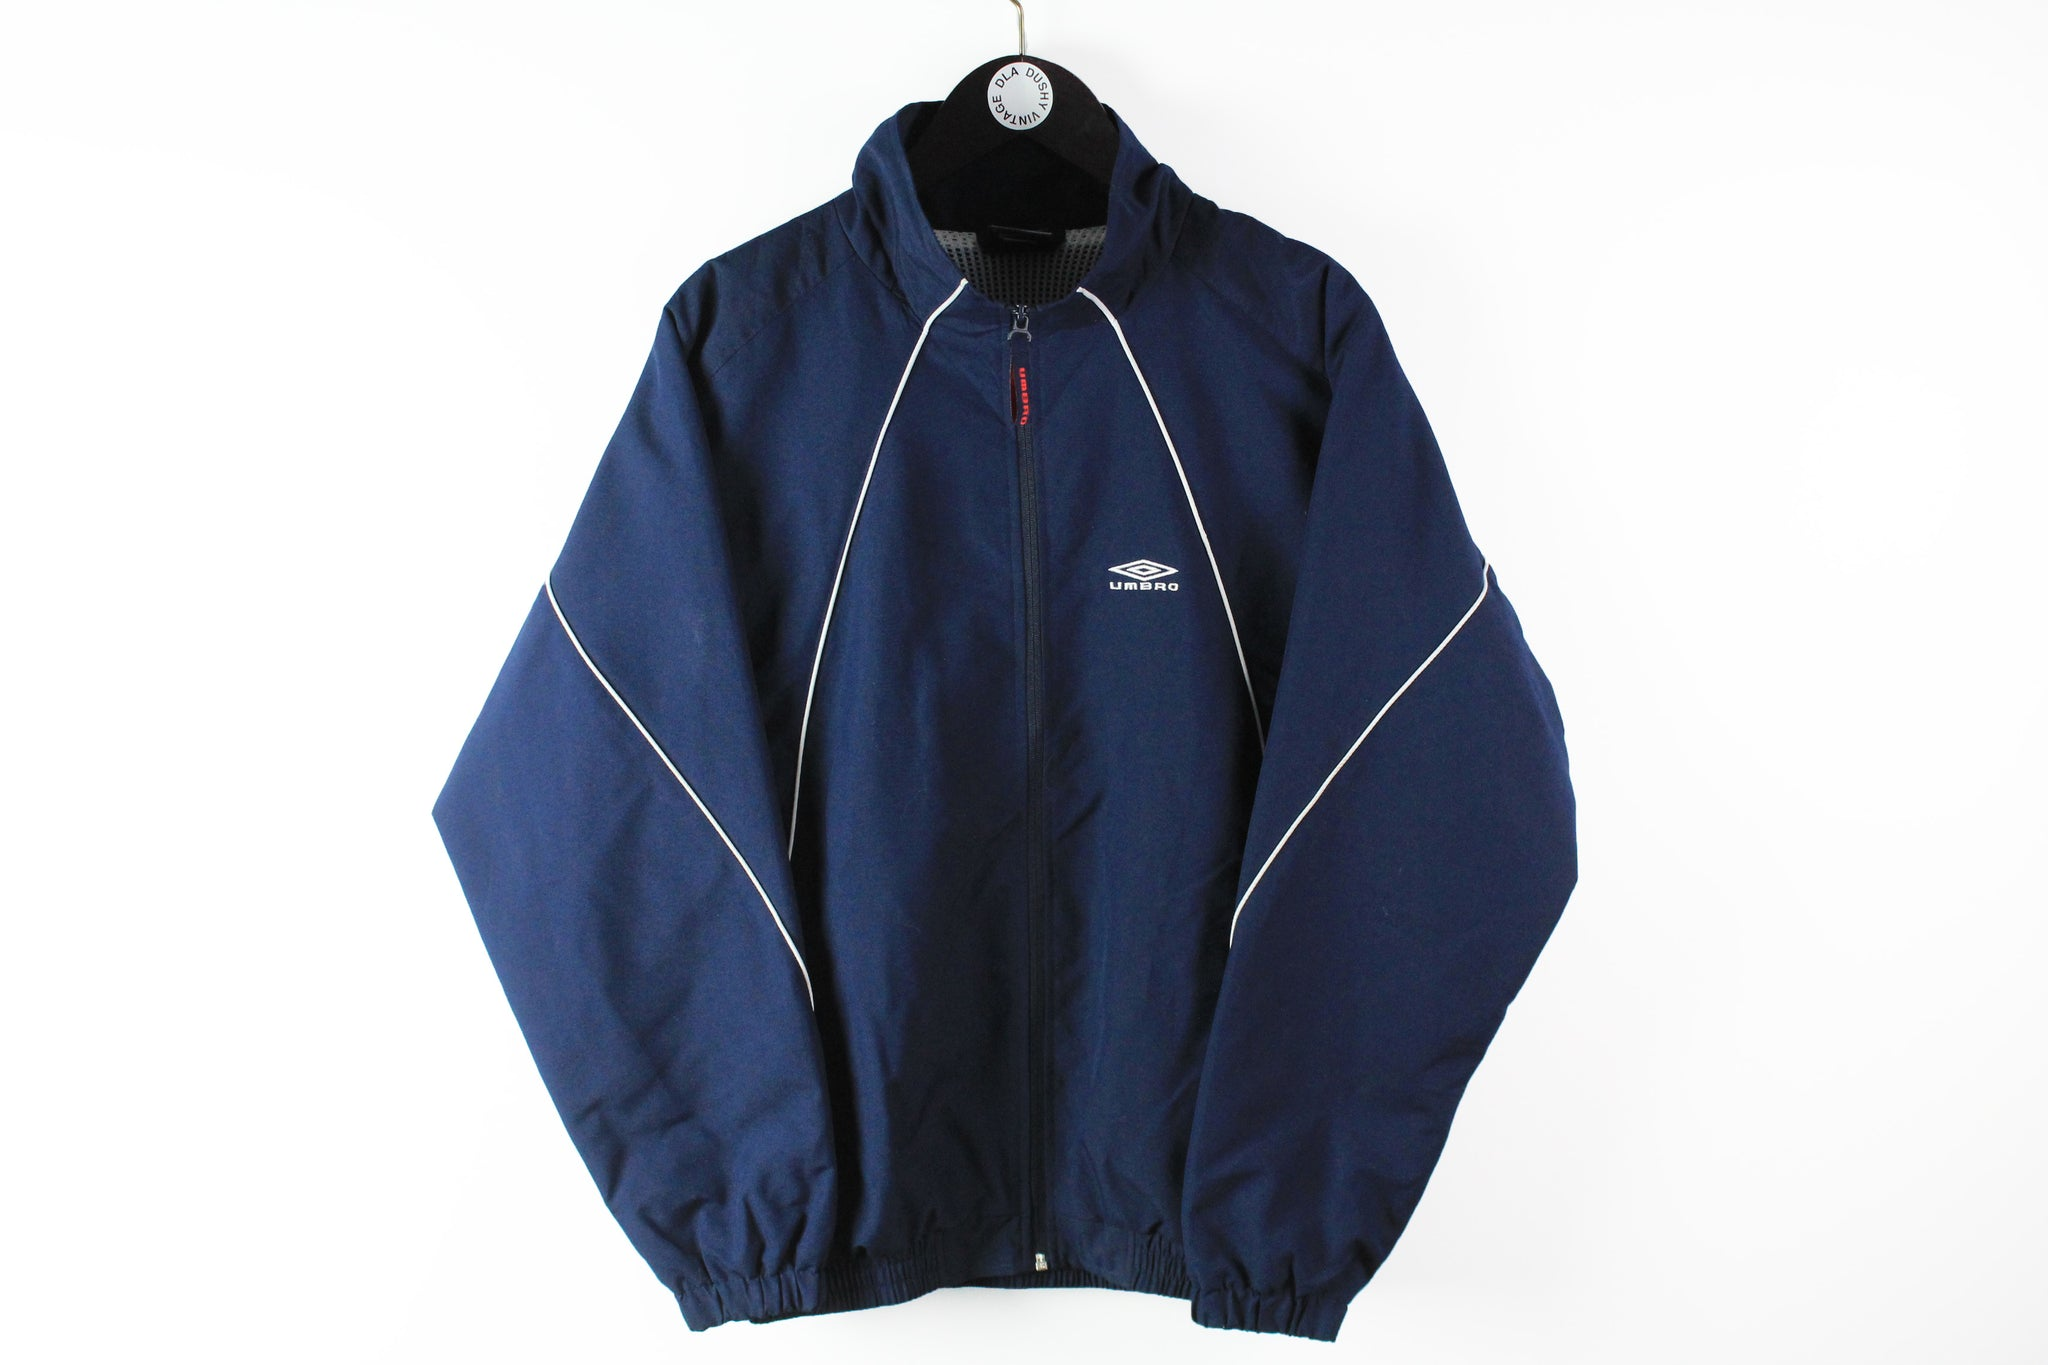 Vintage Umbro Track Jacket Small / Medium navy blue big logo 90s sport UK windbreaker